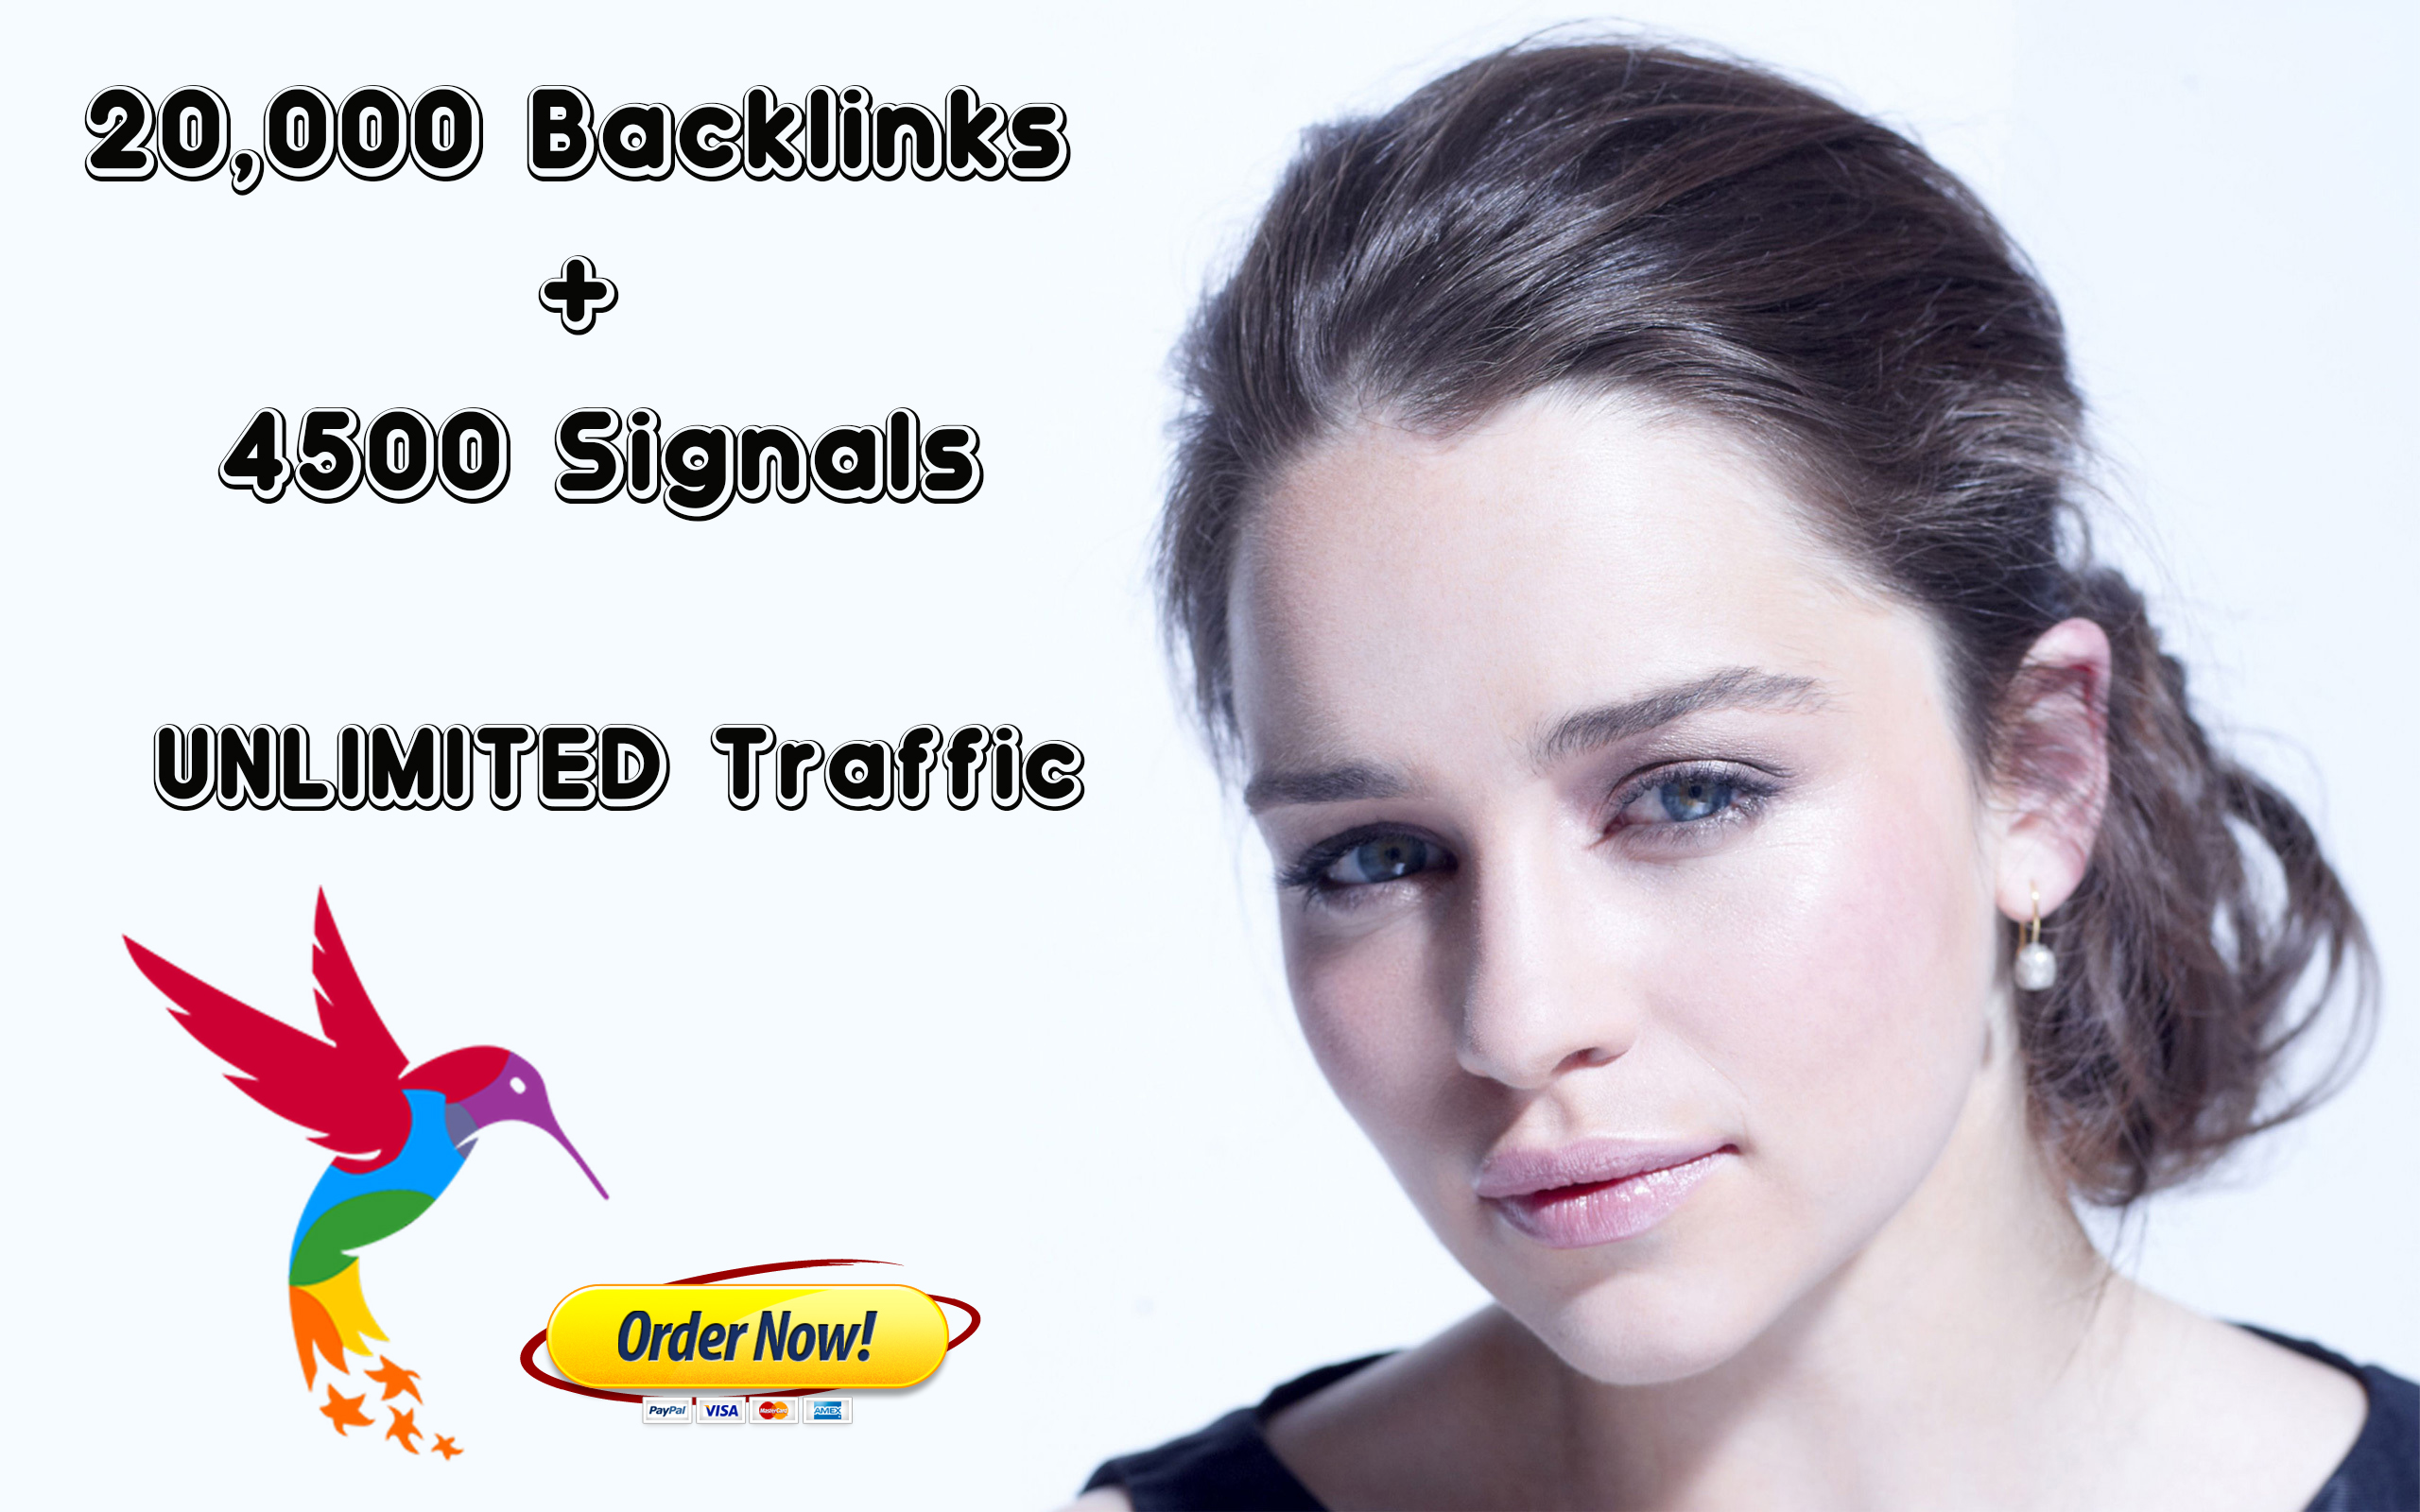 RANK IN THE TOP 10 - 20,000 Backlinks 4500 Signals - UNLIMITED Traffic - Bookmarks with 100 Different Engines on Social Media included - 10,000+ orders completed - LINKBEAST SEO